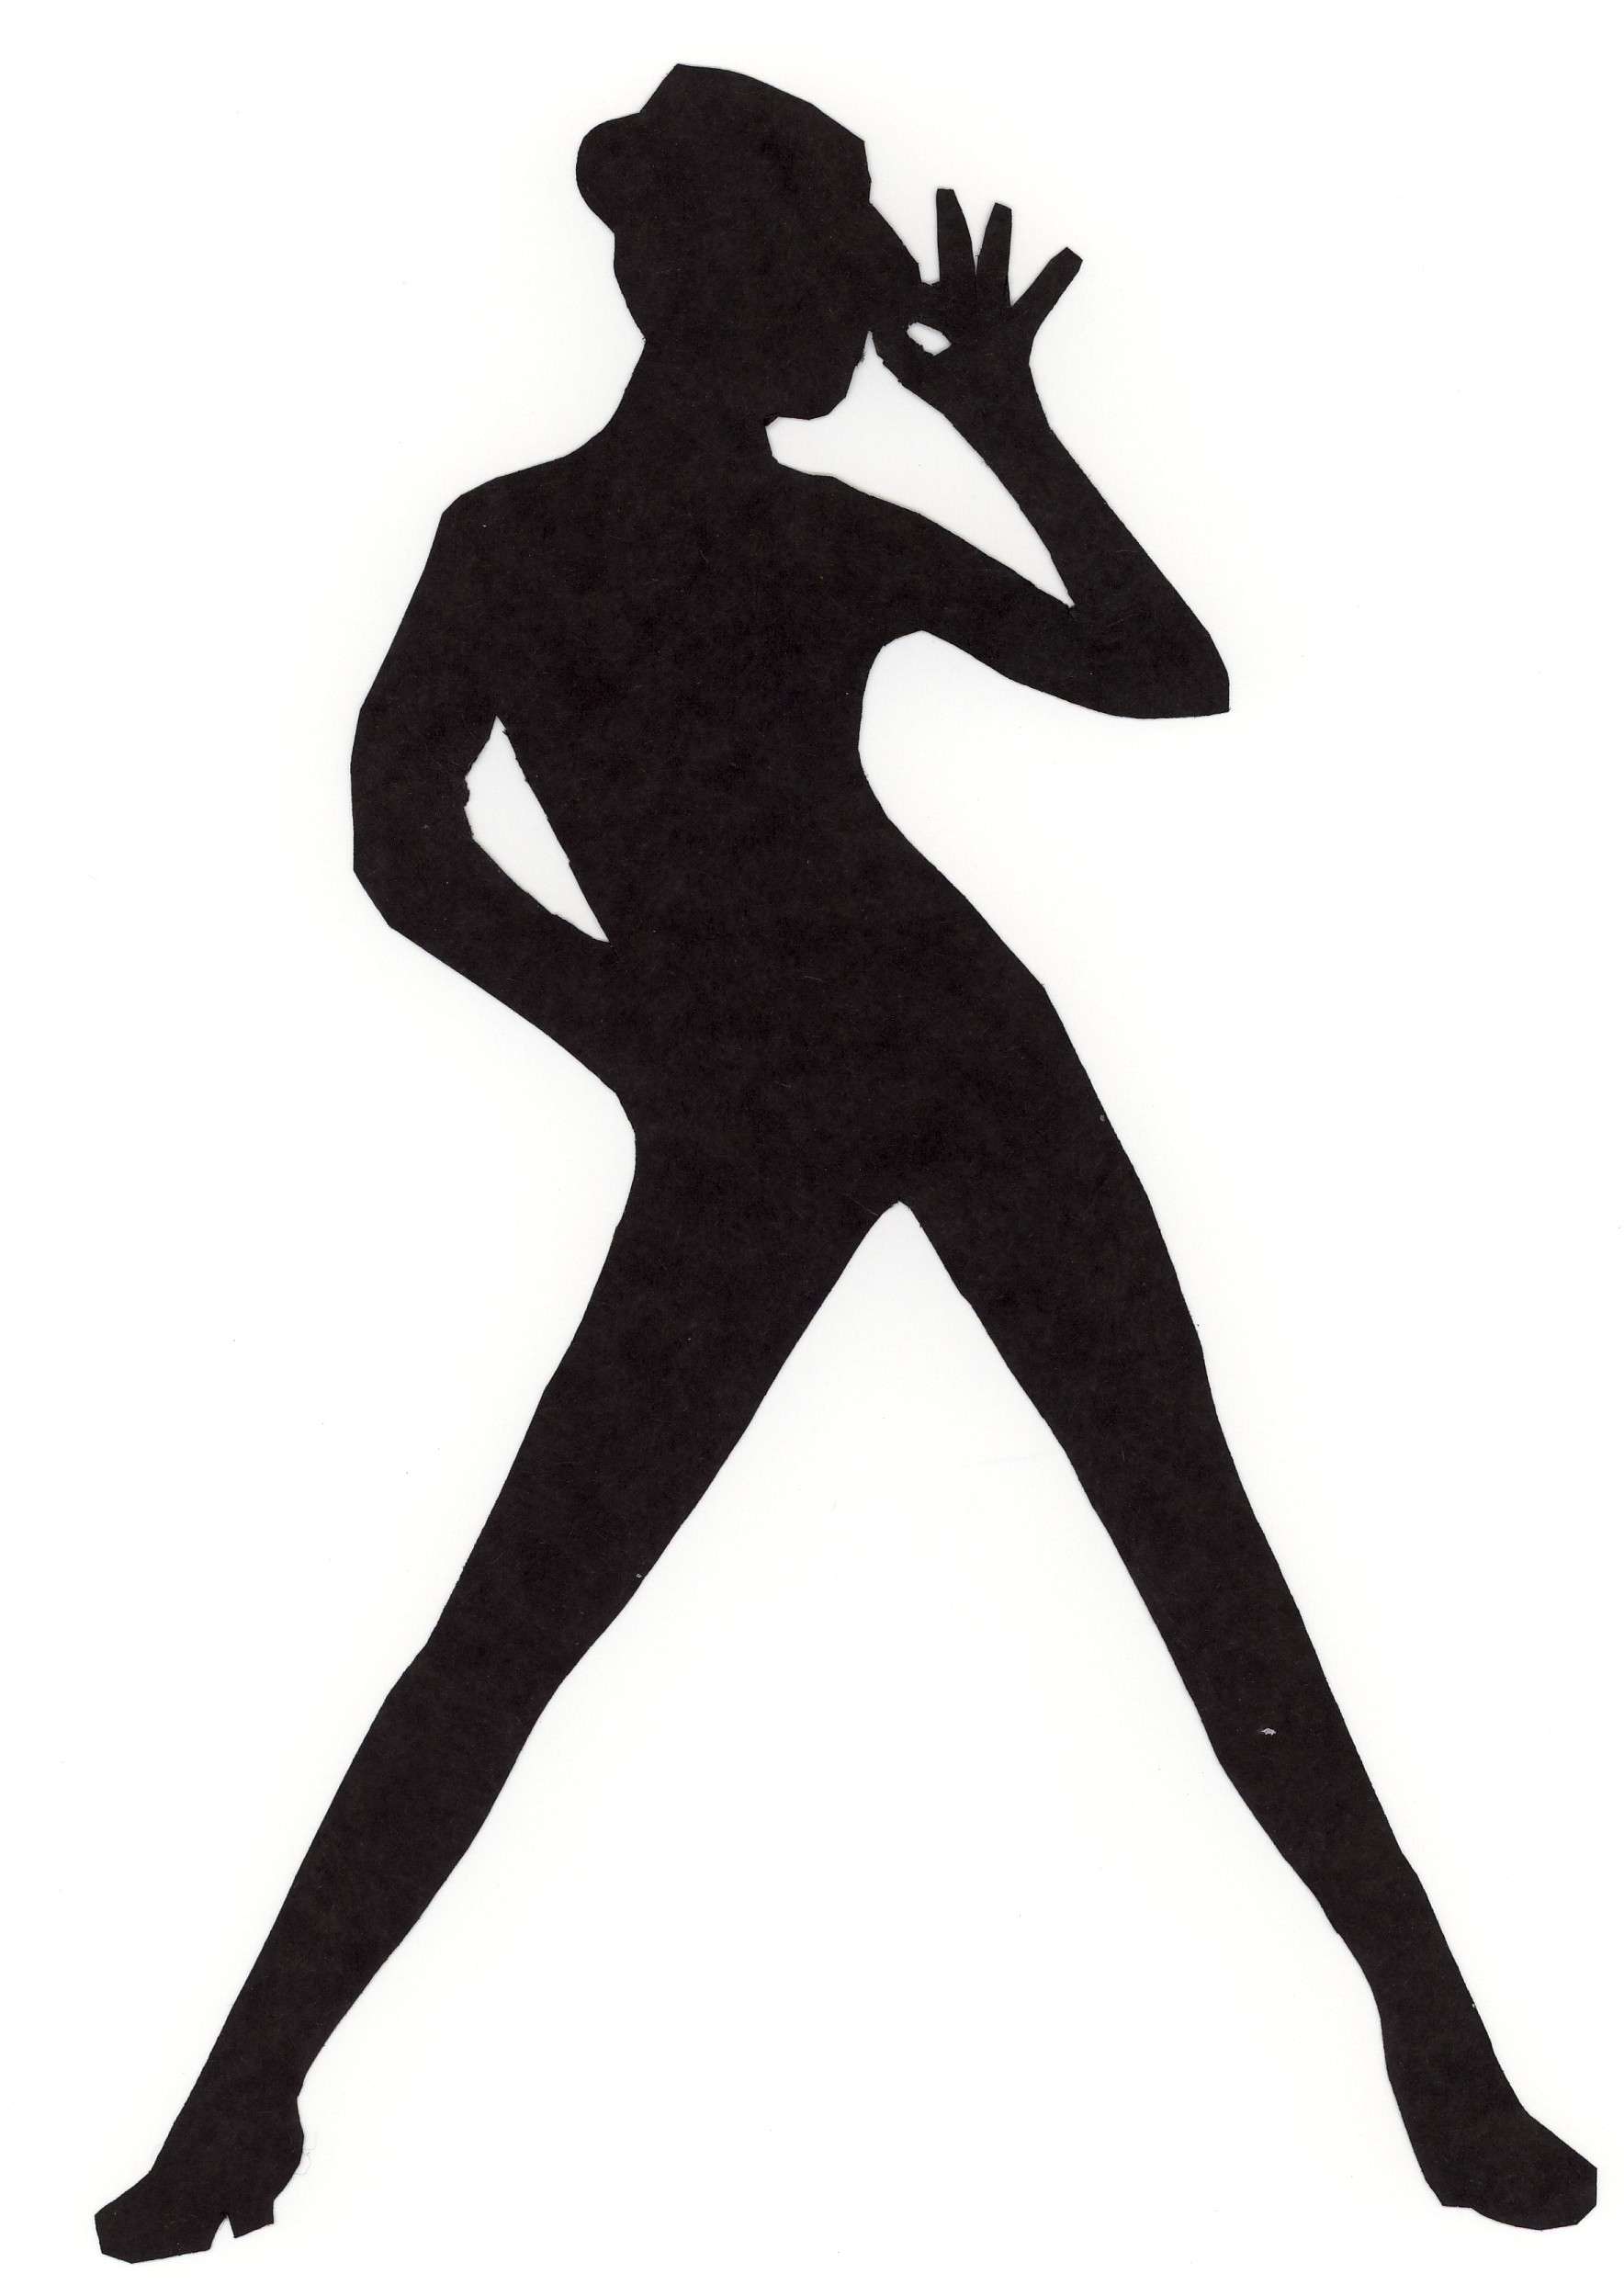 Dance Shoes Clip Art - Cliparts.co - 318.7KB